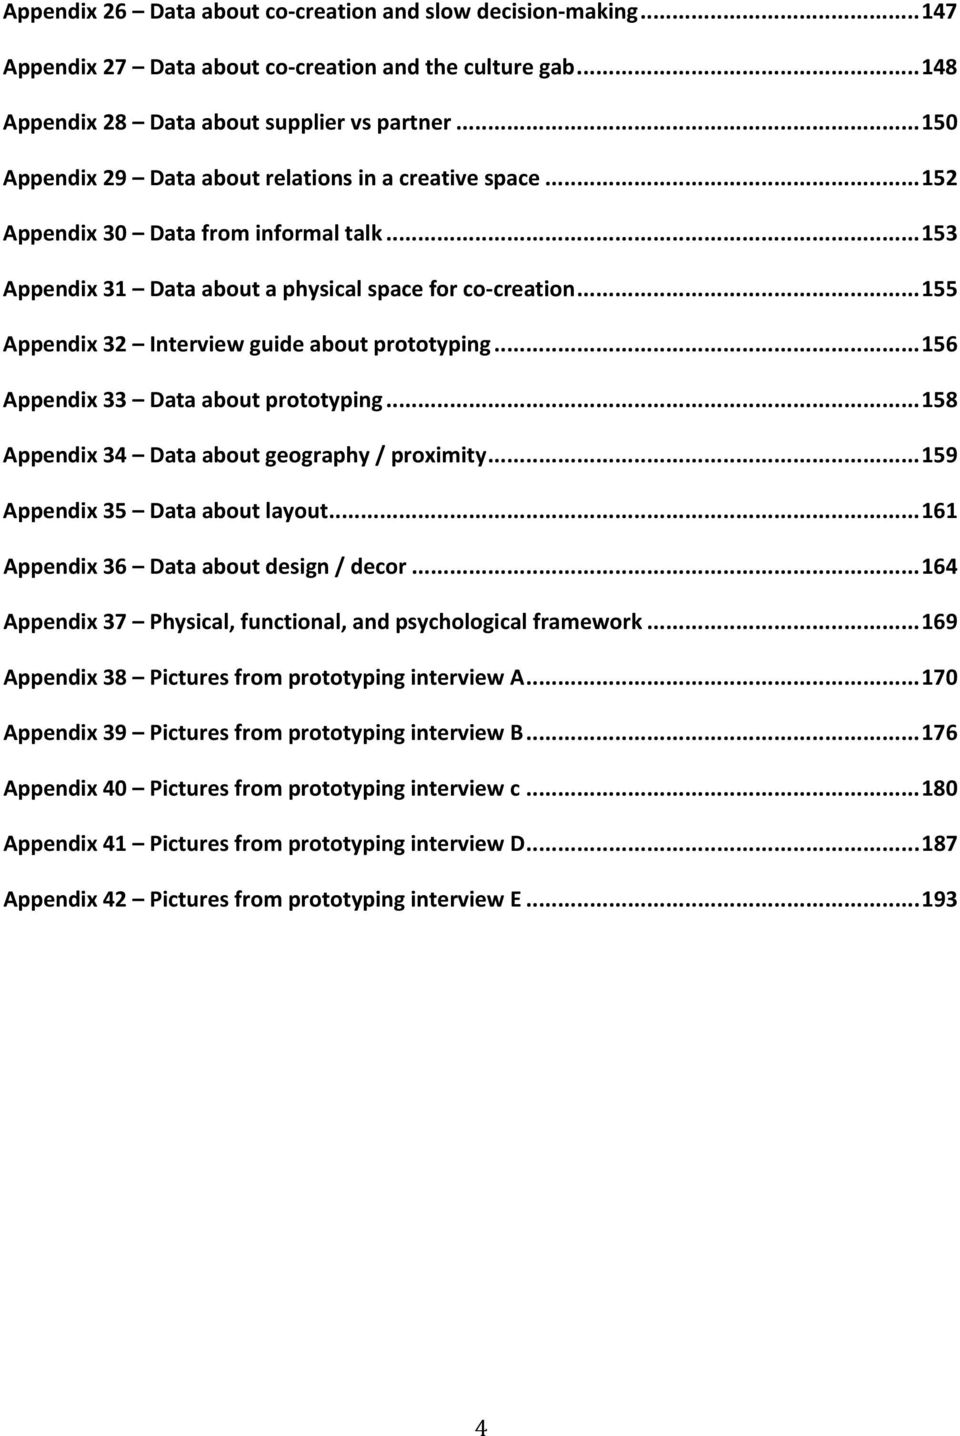 .. 155 Appendix 32 Interview guide about prototyping... 156 Appendix 33 Data about prototyping... 158 Appendix 34 Data about geography / proximity... 159 Appendix 35 Data about layout.